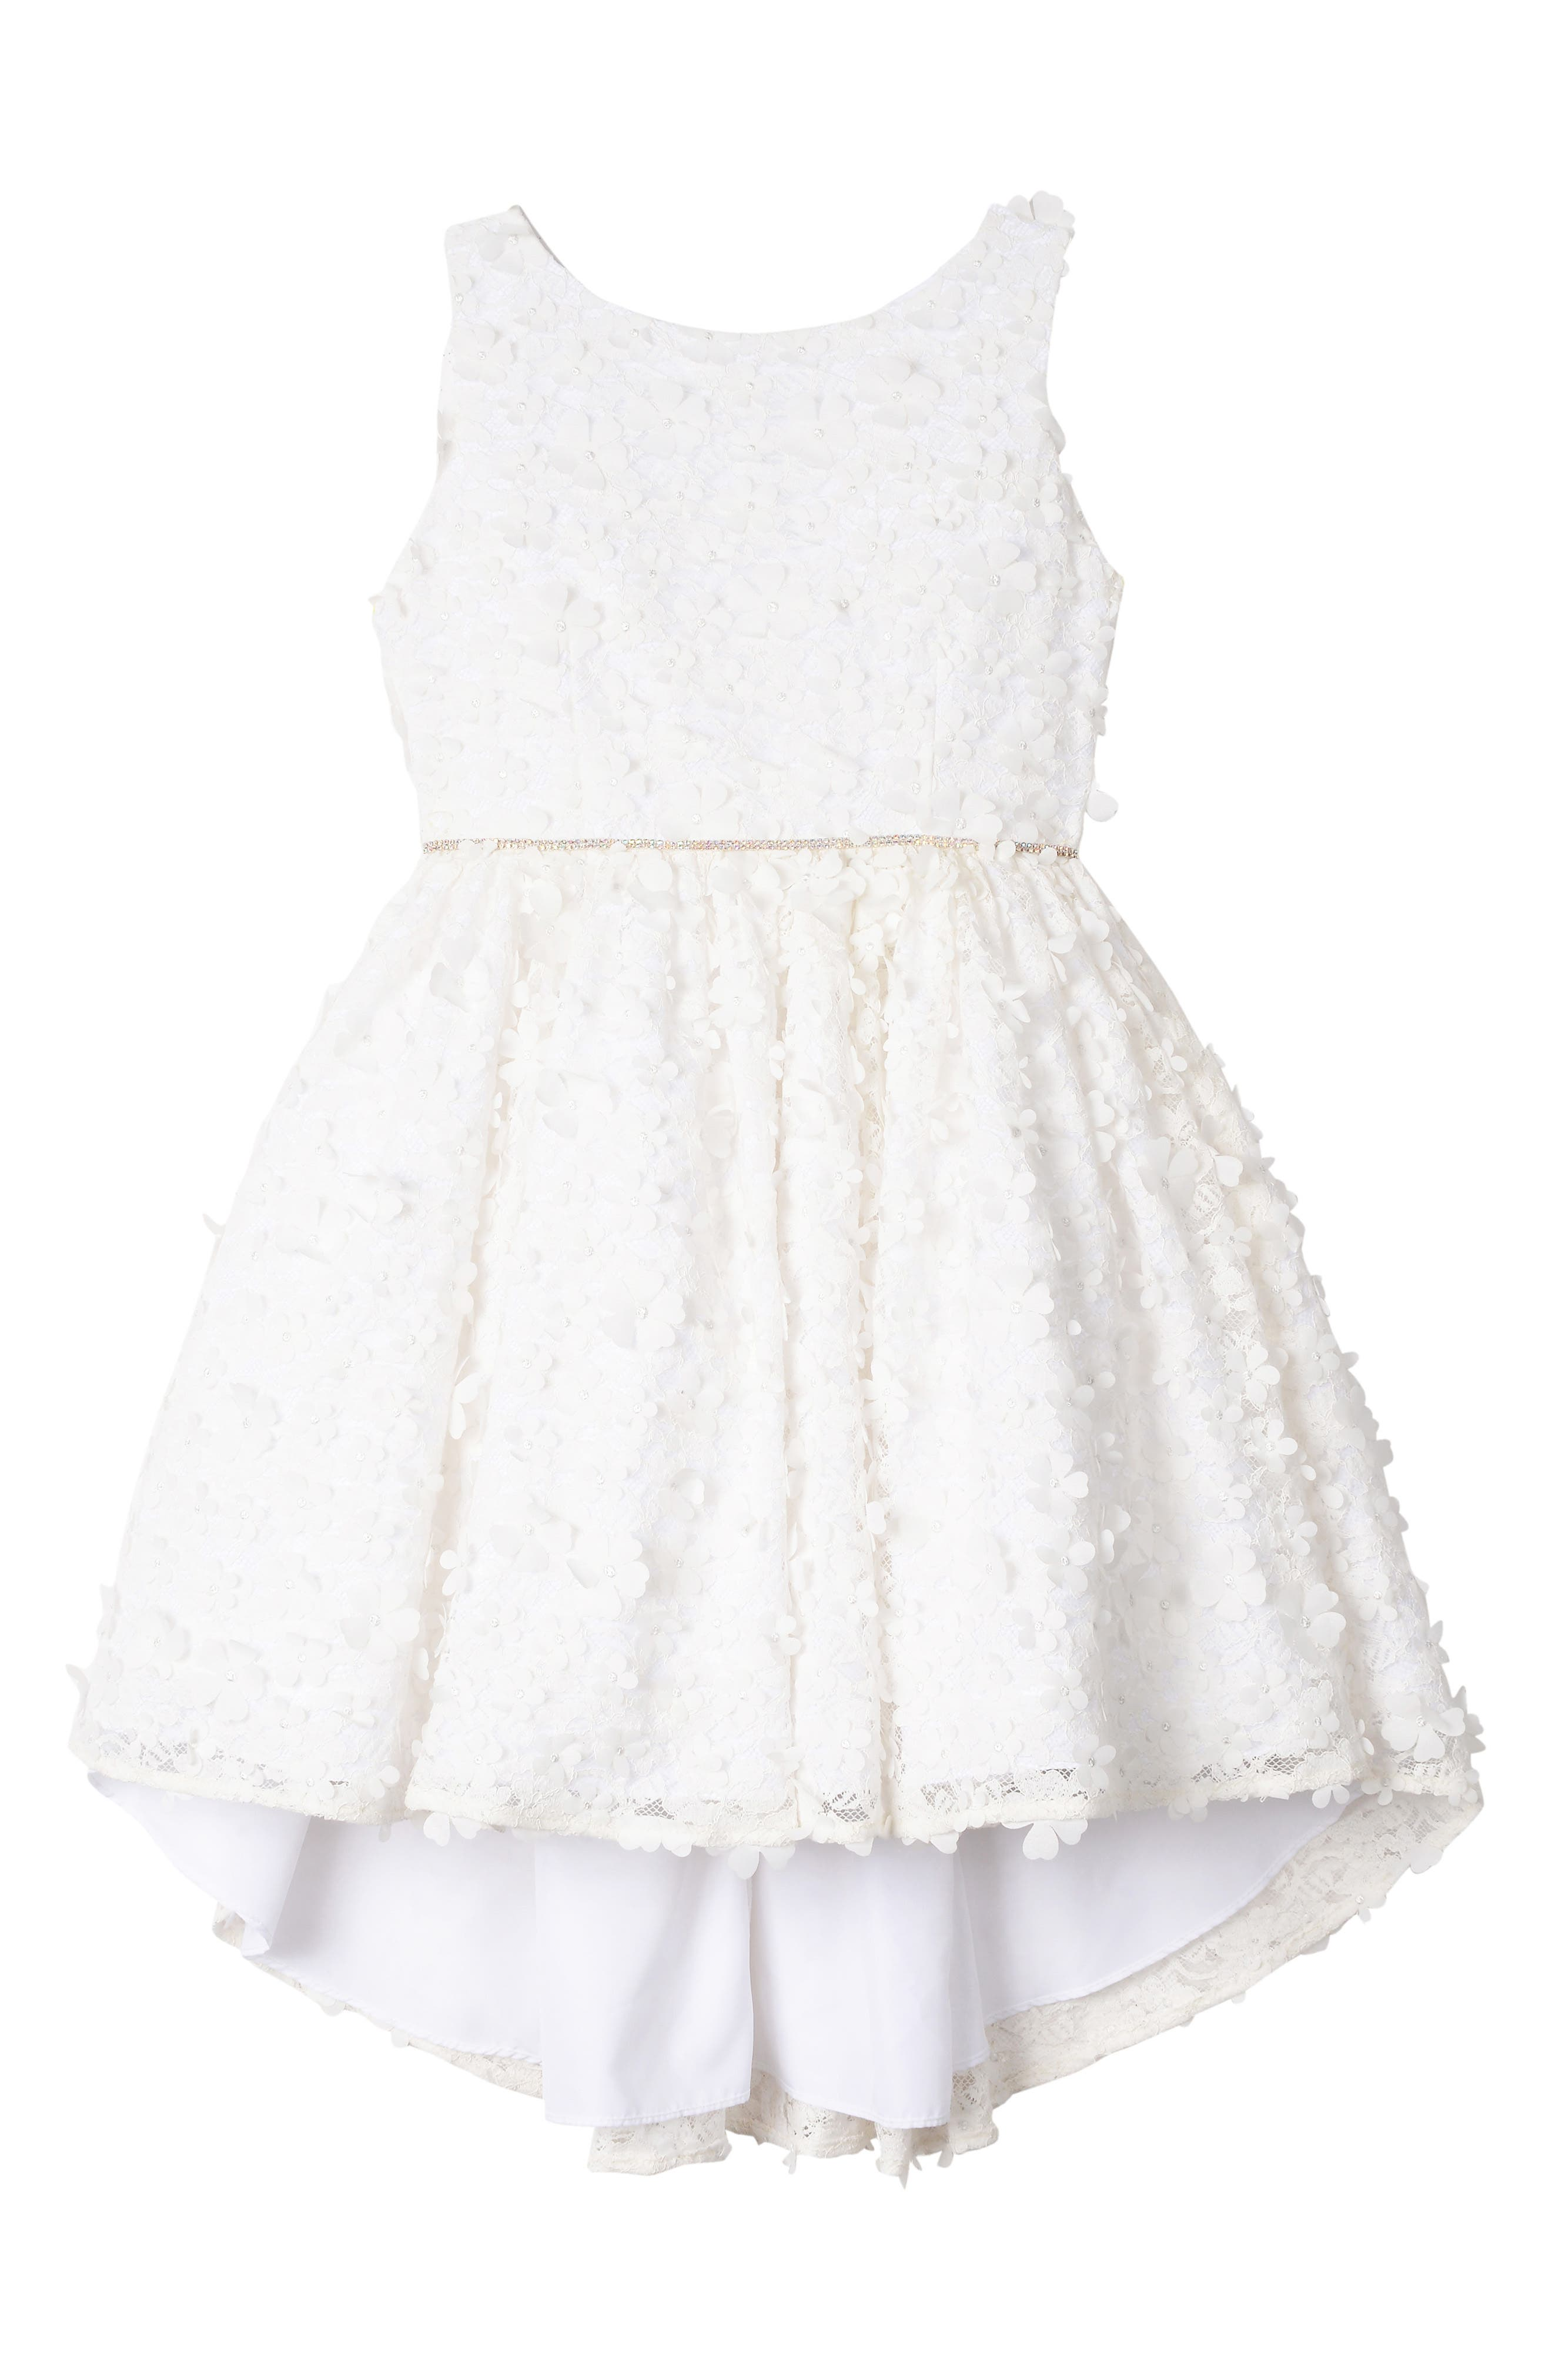 BADGLEY MISCHKA COLLECTION Badgley Mischka 3D Flower High/Low Lace Dress, Main, color, WHITE